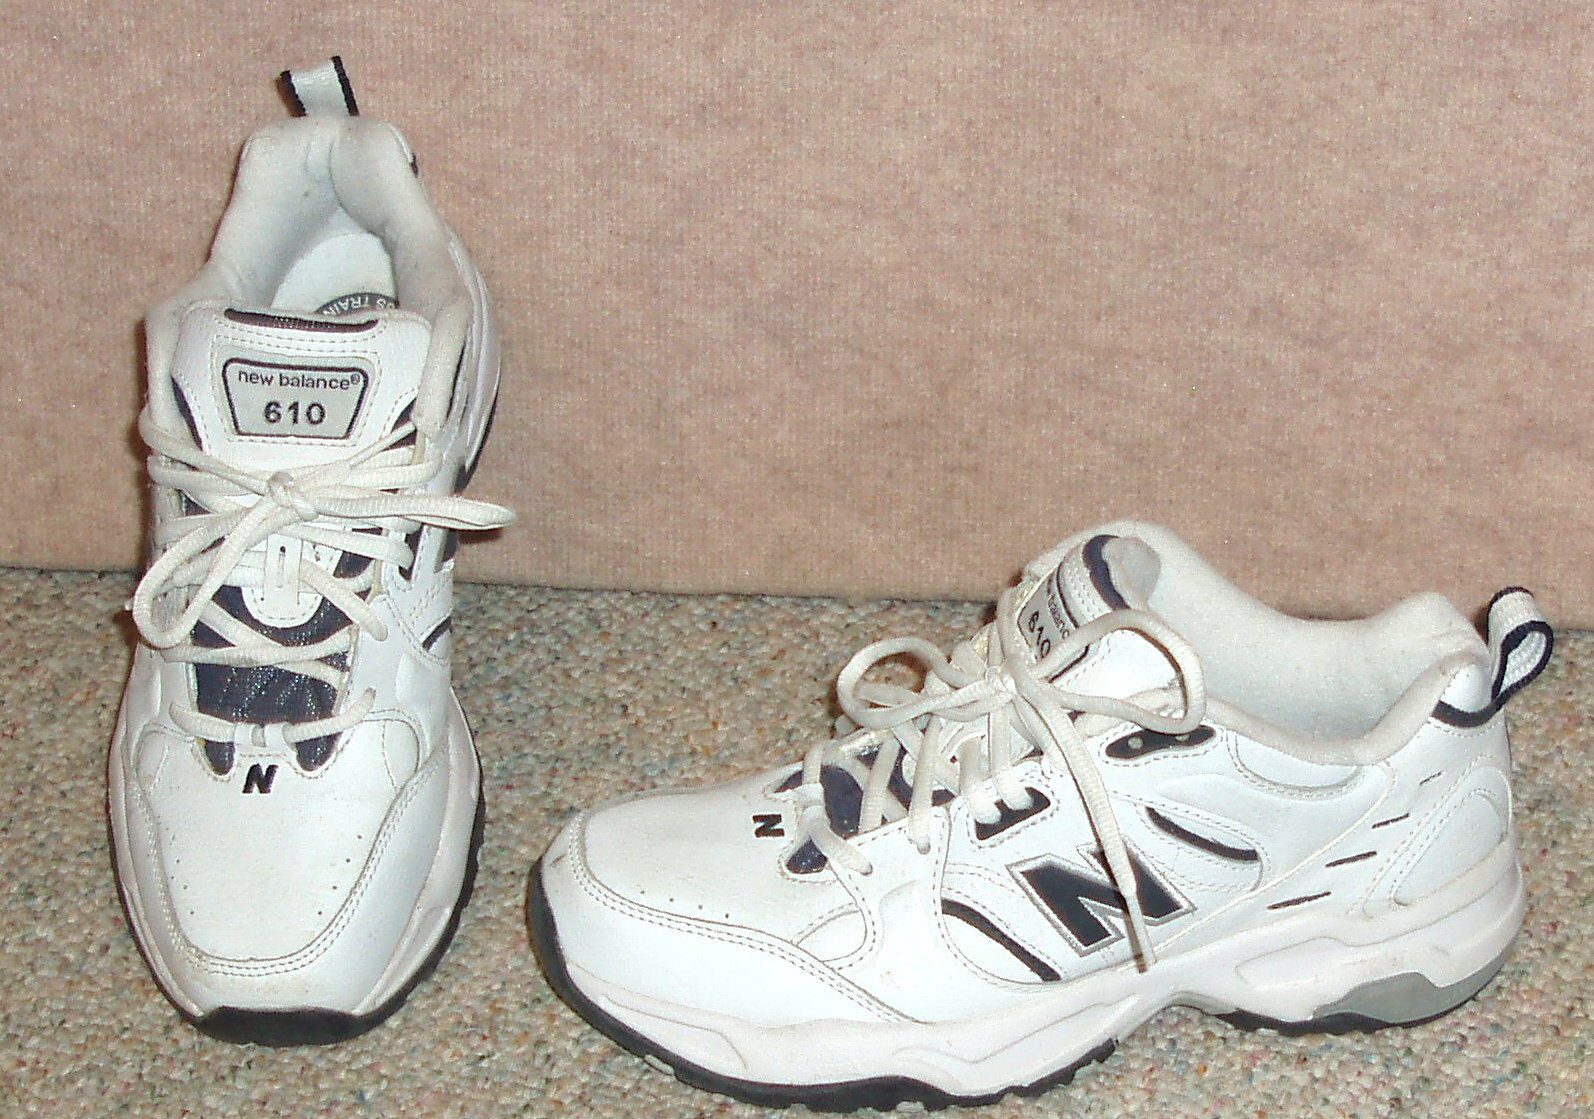 official photos 5ebe6 323df Men s white white white NEW BALANCE MX610WN athletic shoes   sneakers , sz  7 D 76958d